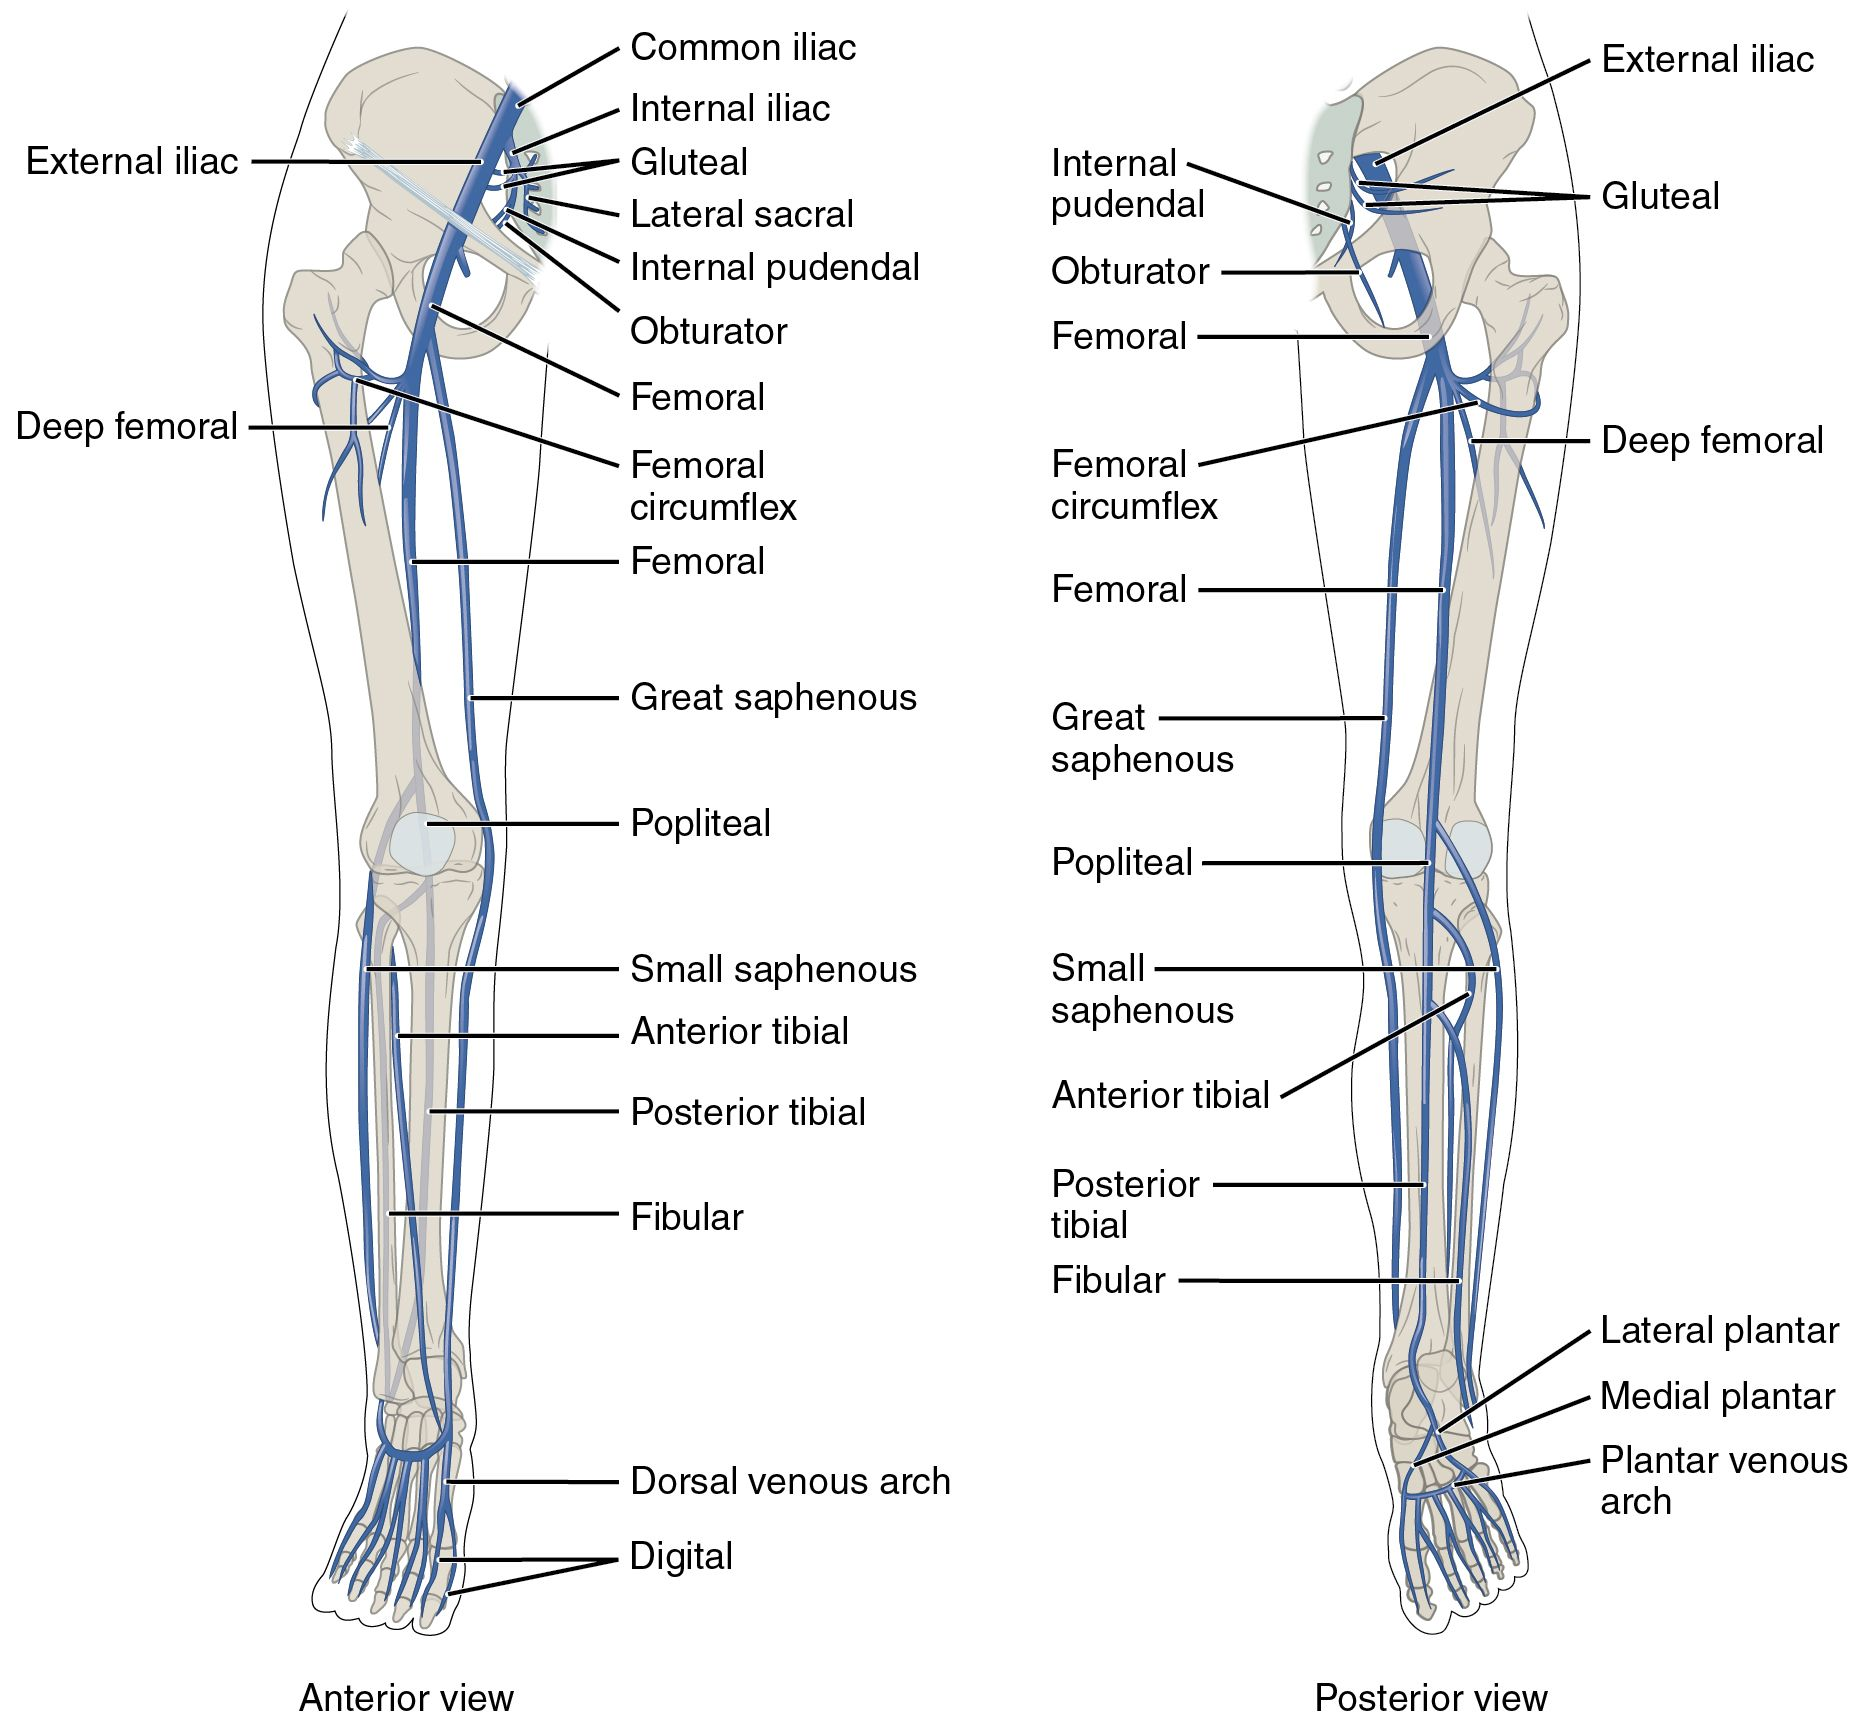 The Left Panel Shows The Anterior View Of Veins In The Legs And The